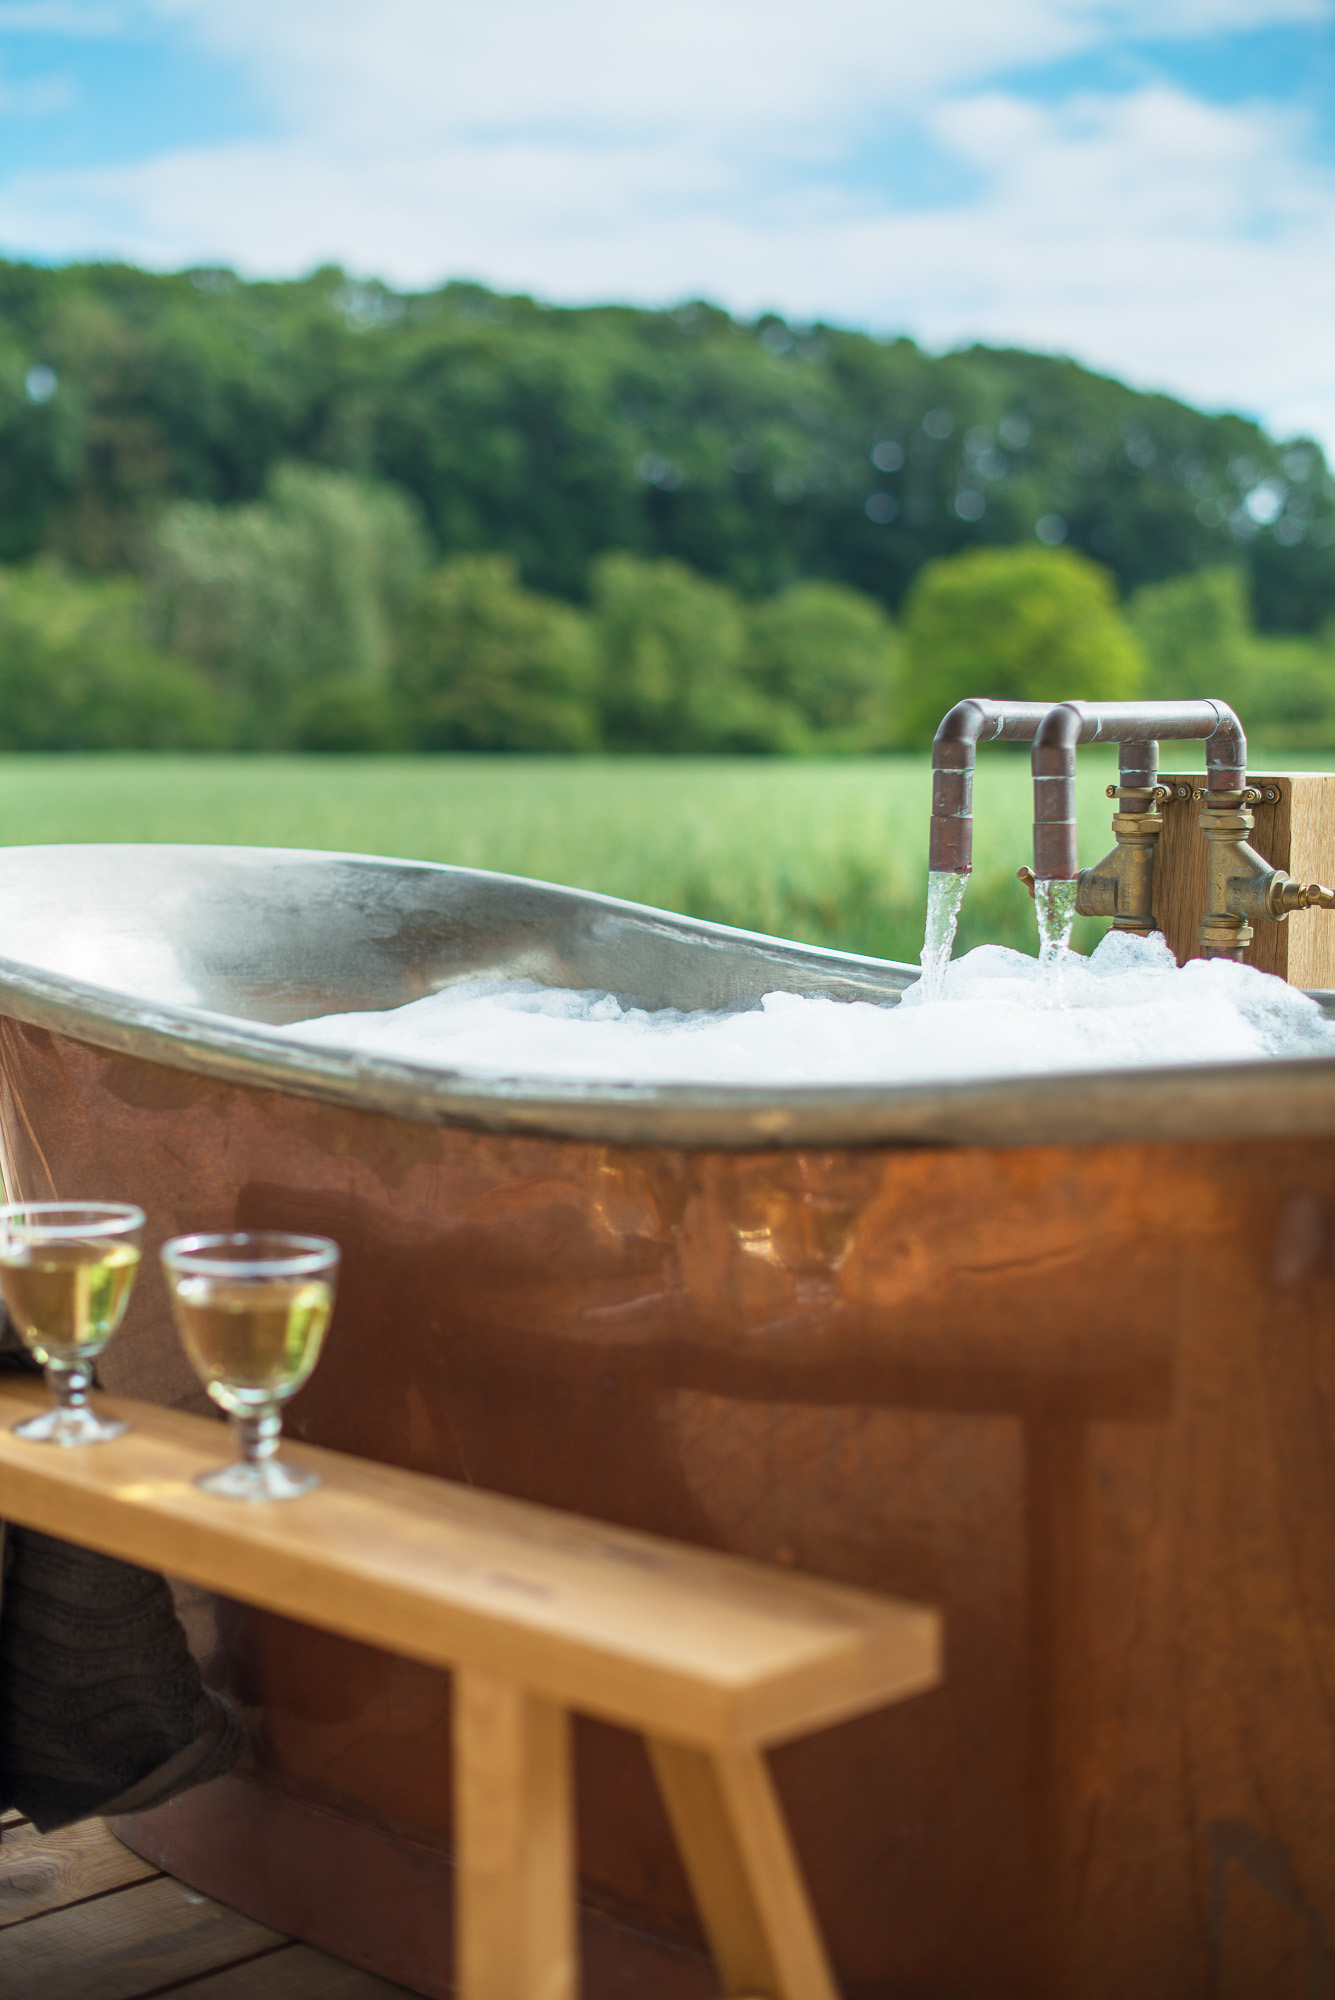 external copper bath full of hot water and bubbles overlooking fields on a sunny day